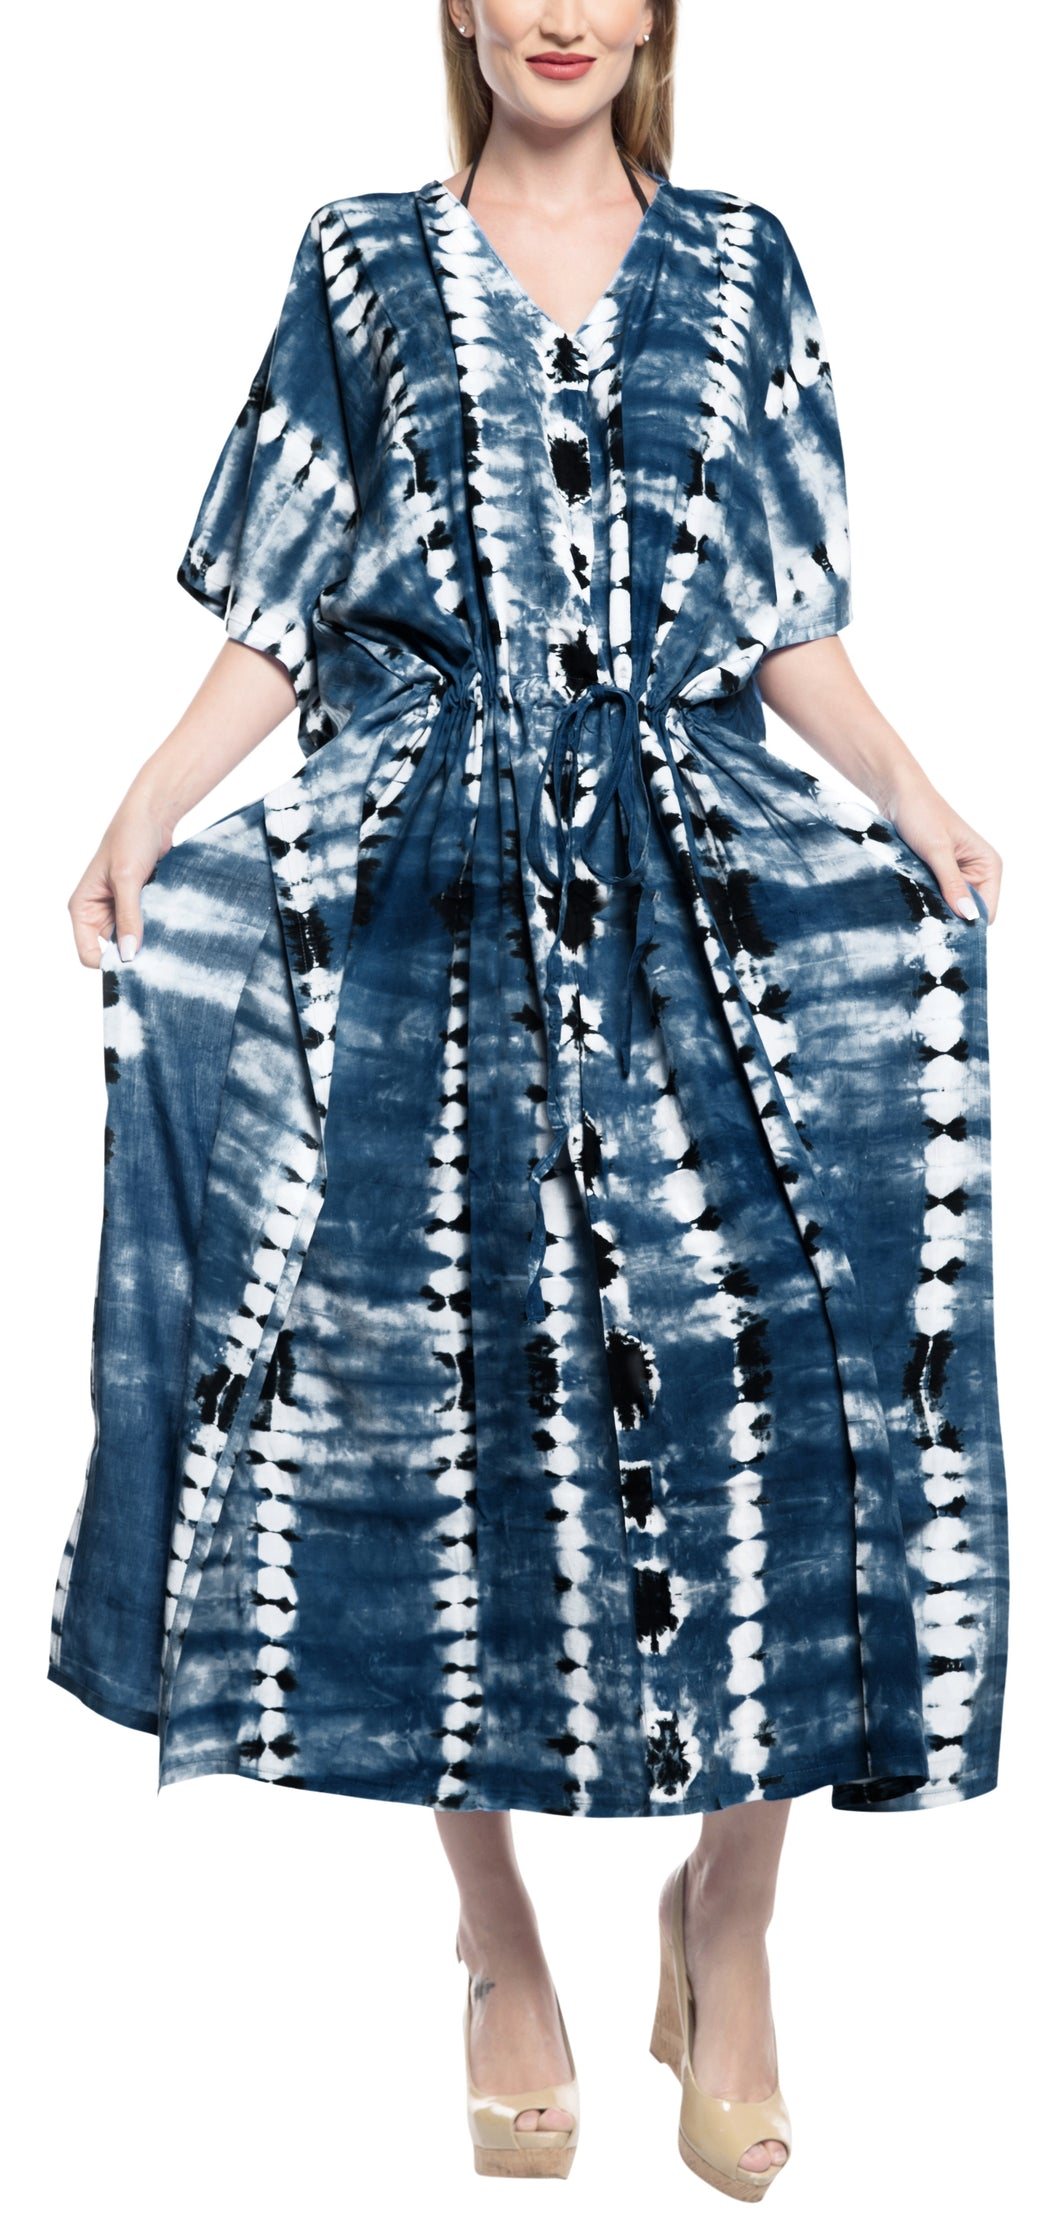 la-leela-rayon-tie_dye-caftan-beach-dress-women-blue_1368-osfm-14-32w